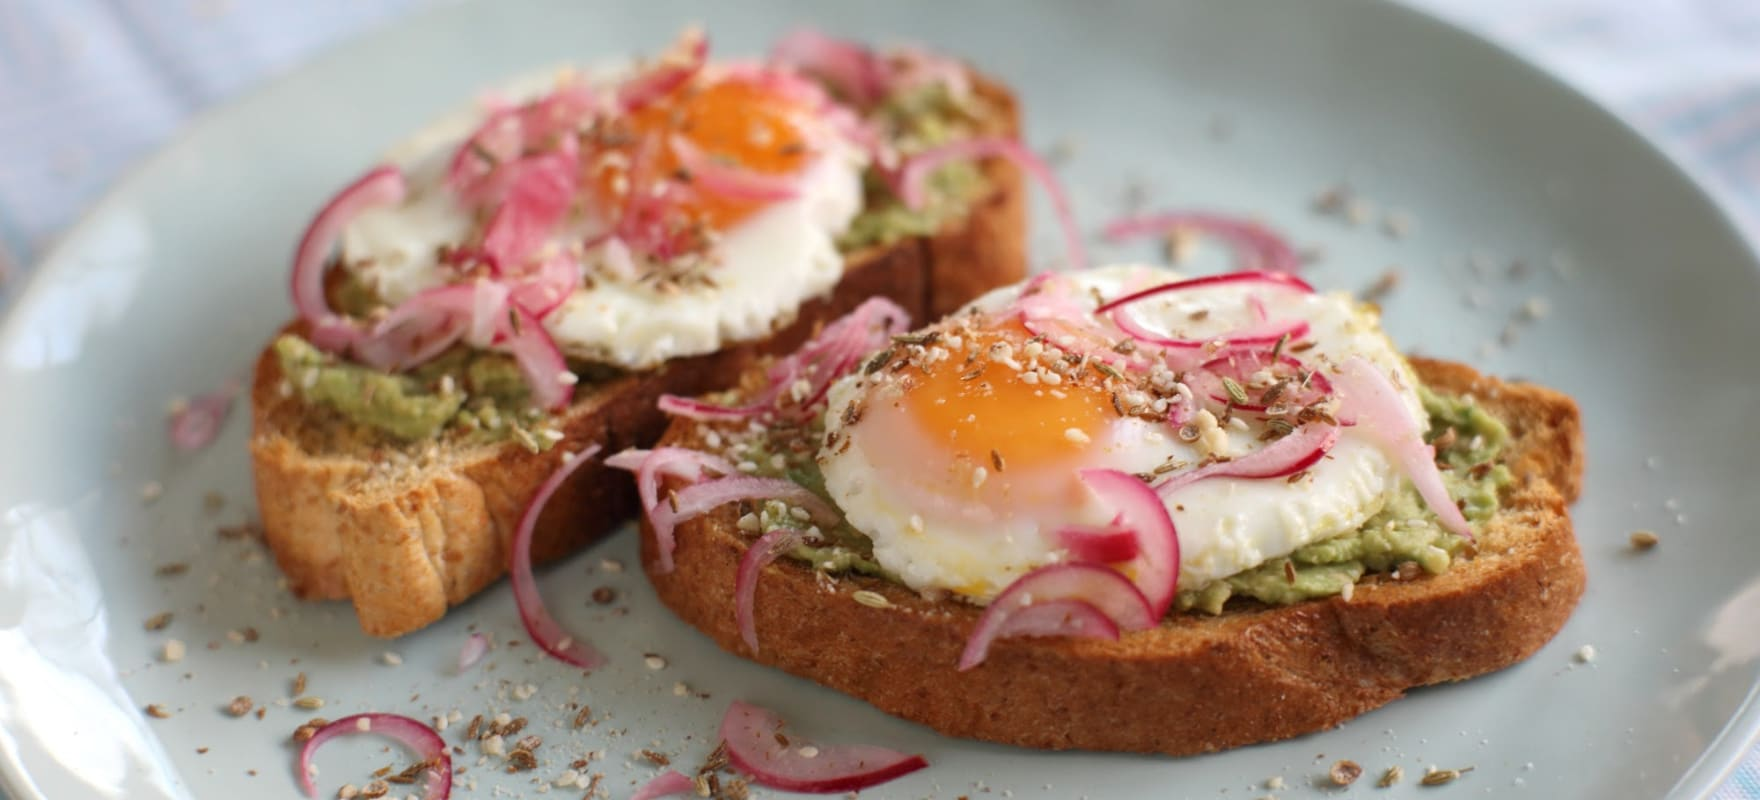 Avocado, egg and spiced dukkah on toast image 1